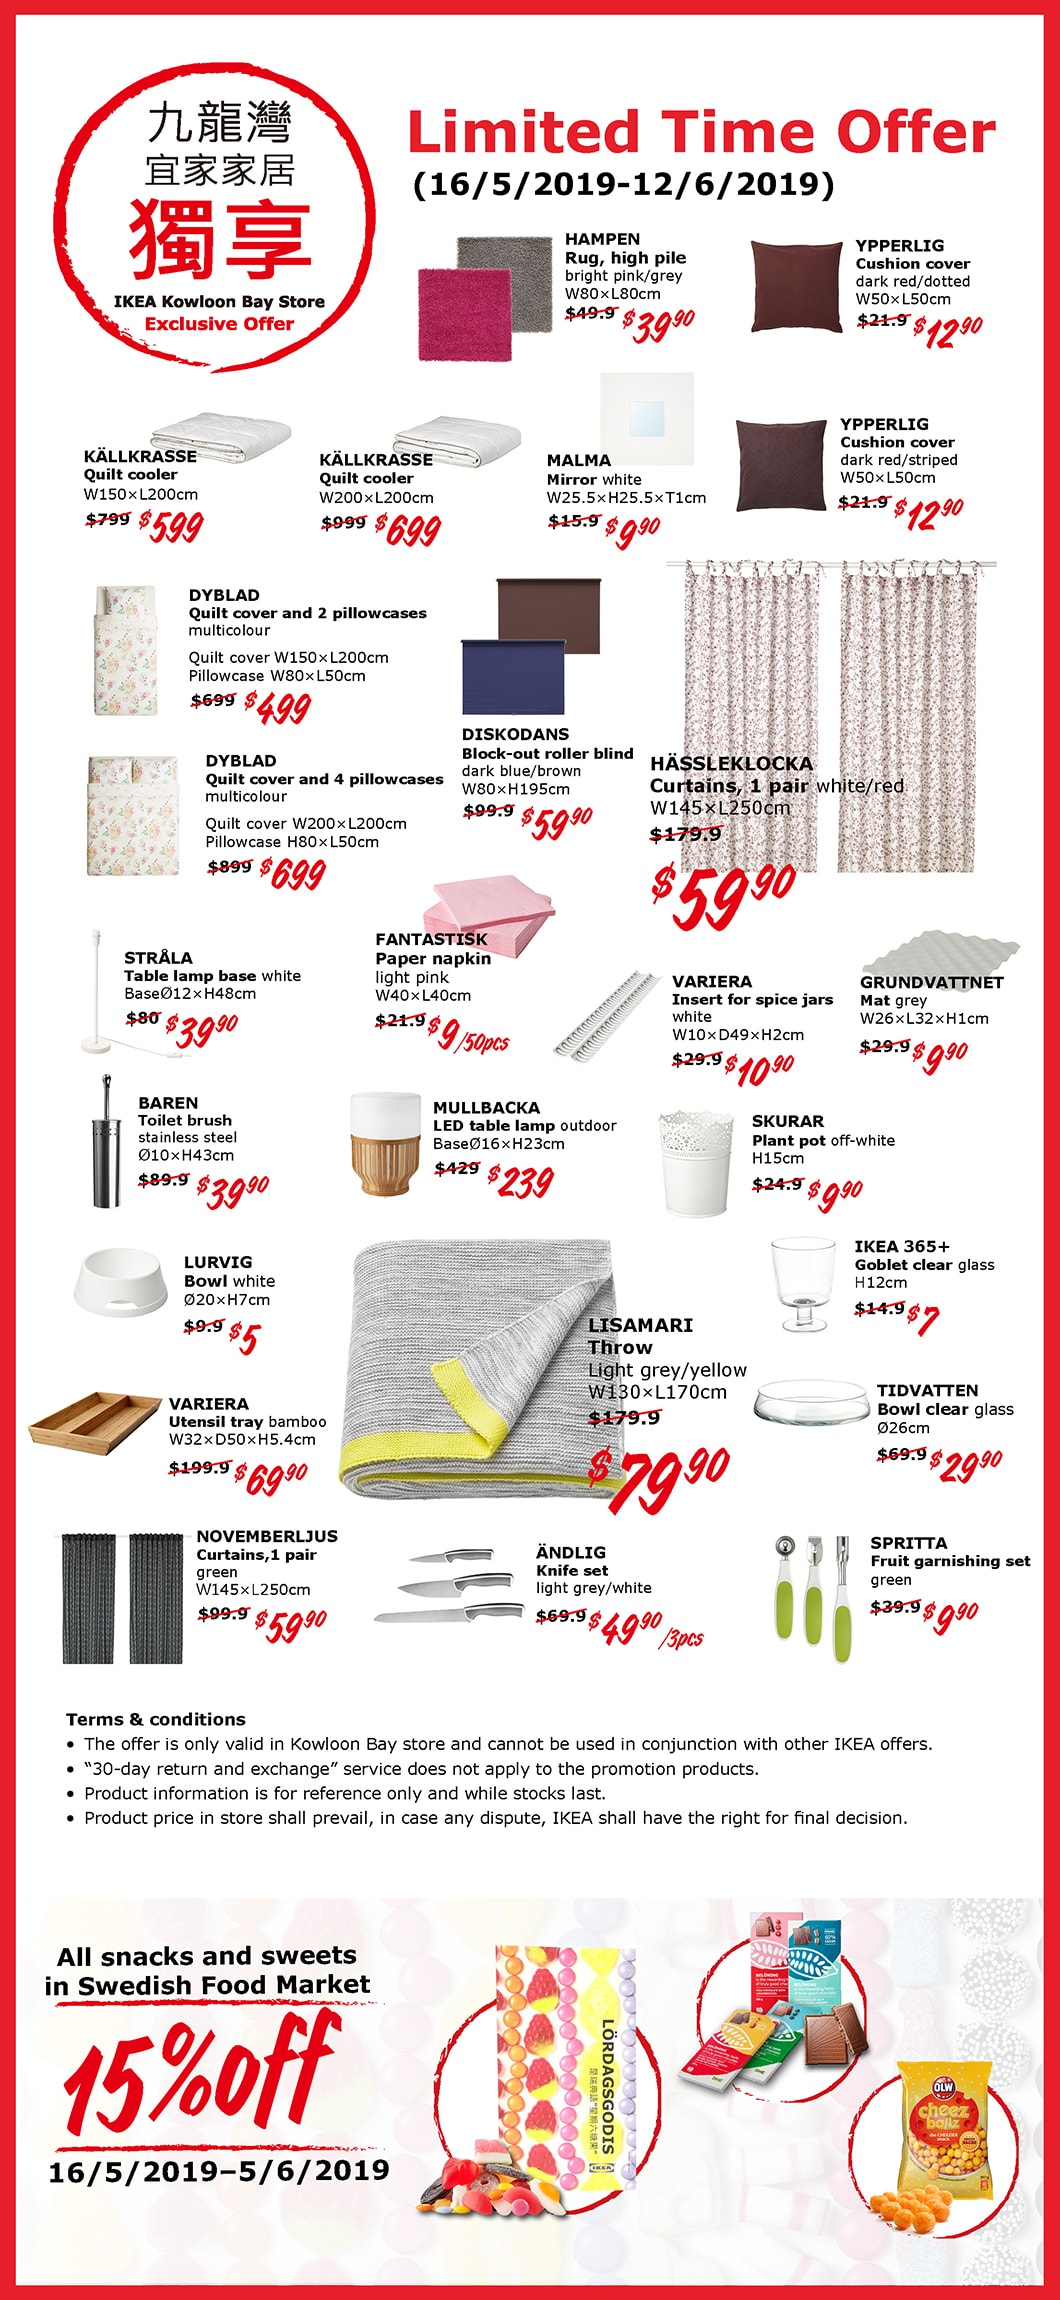 Kowloon bay store limited time offer